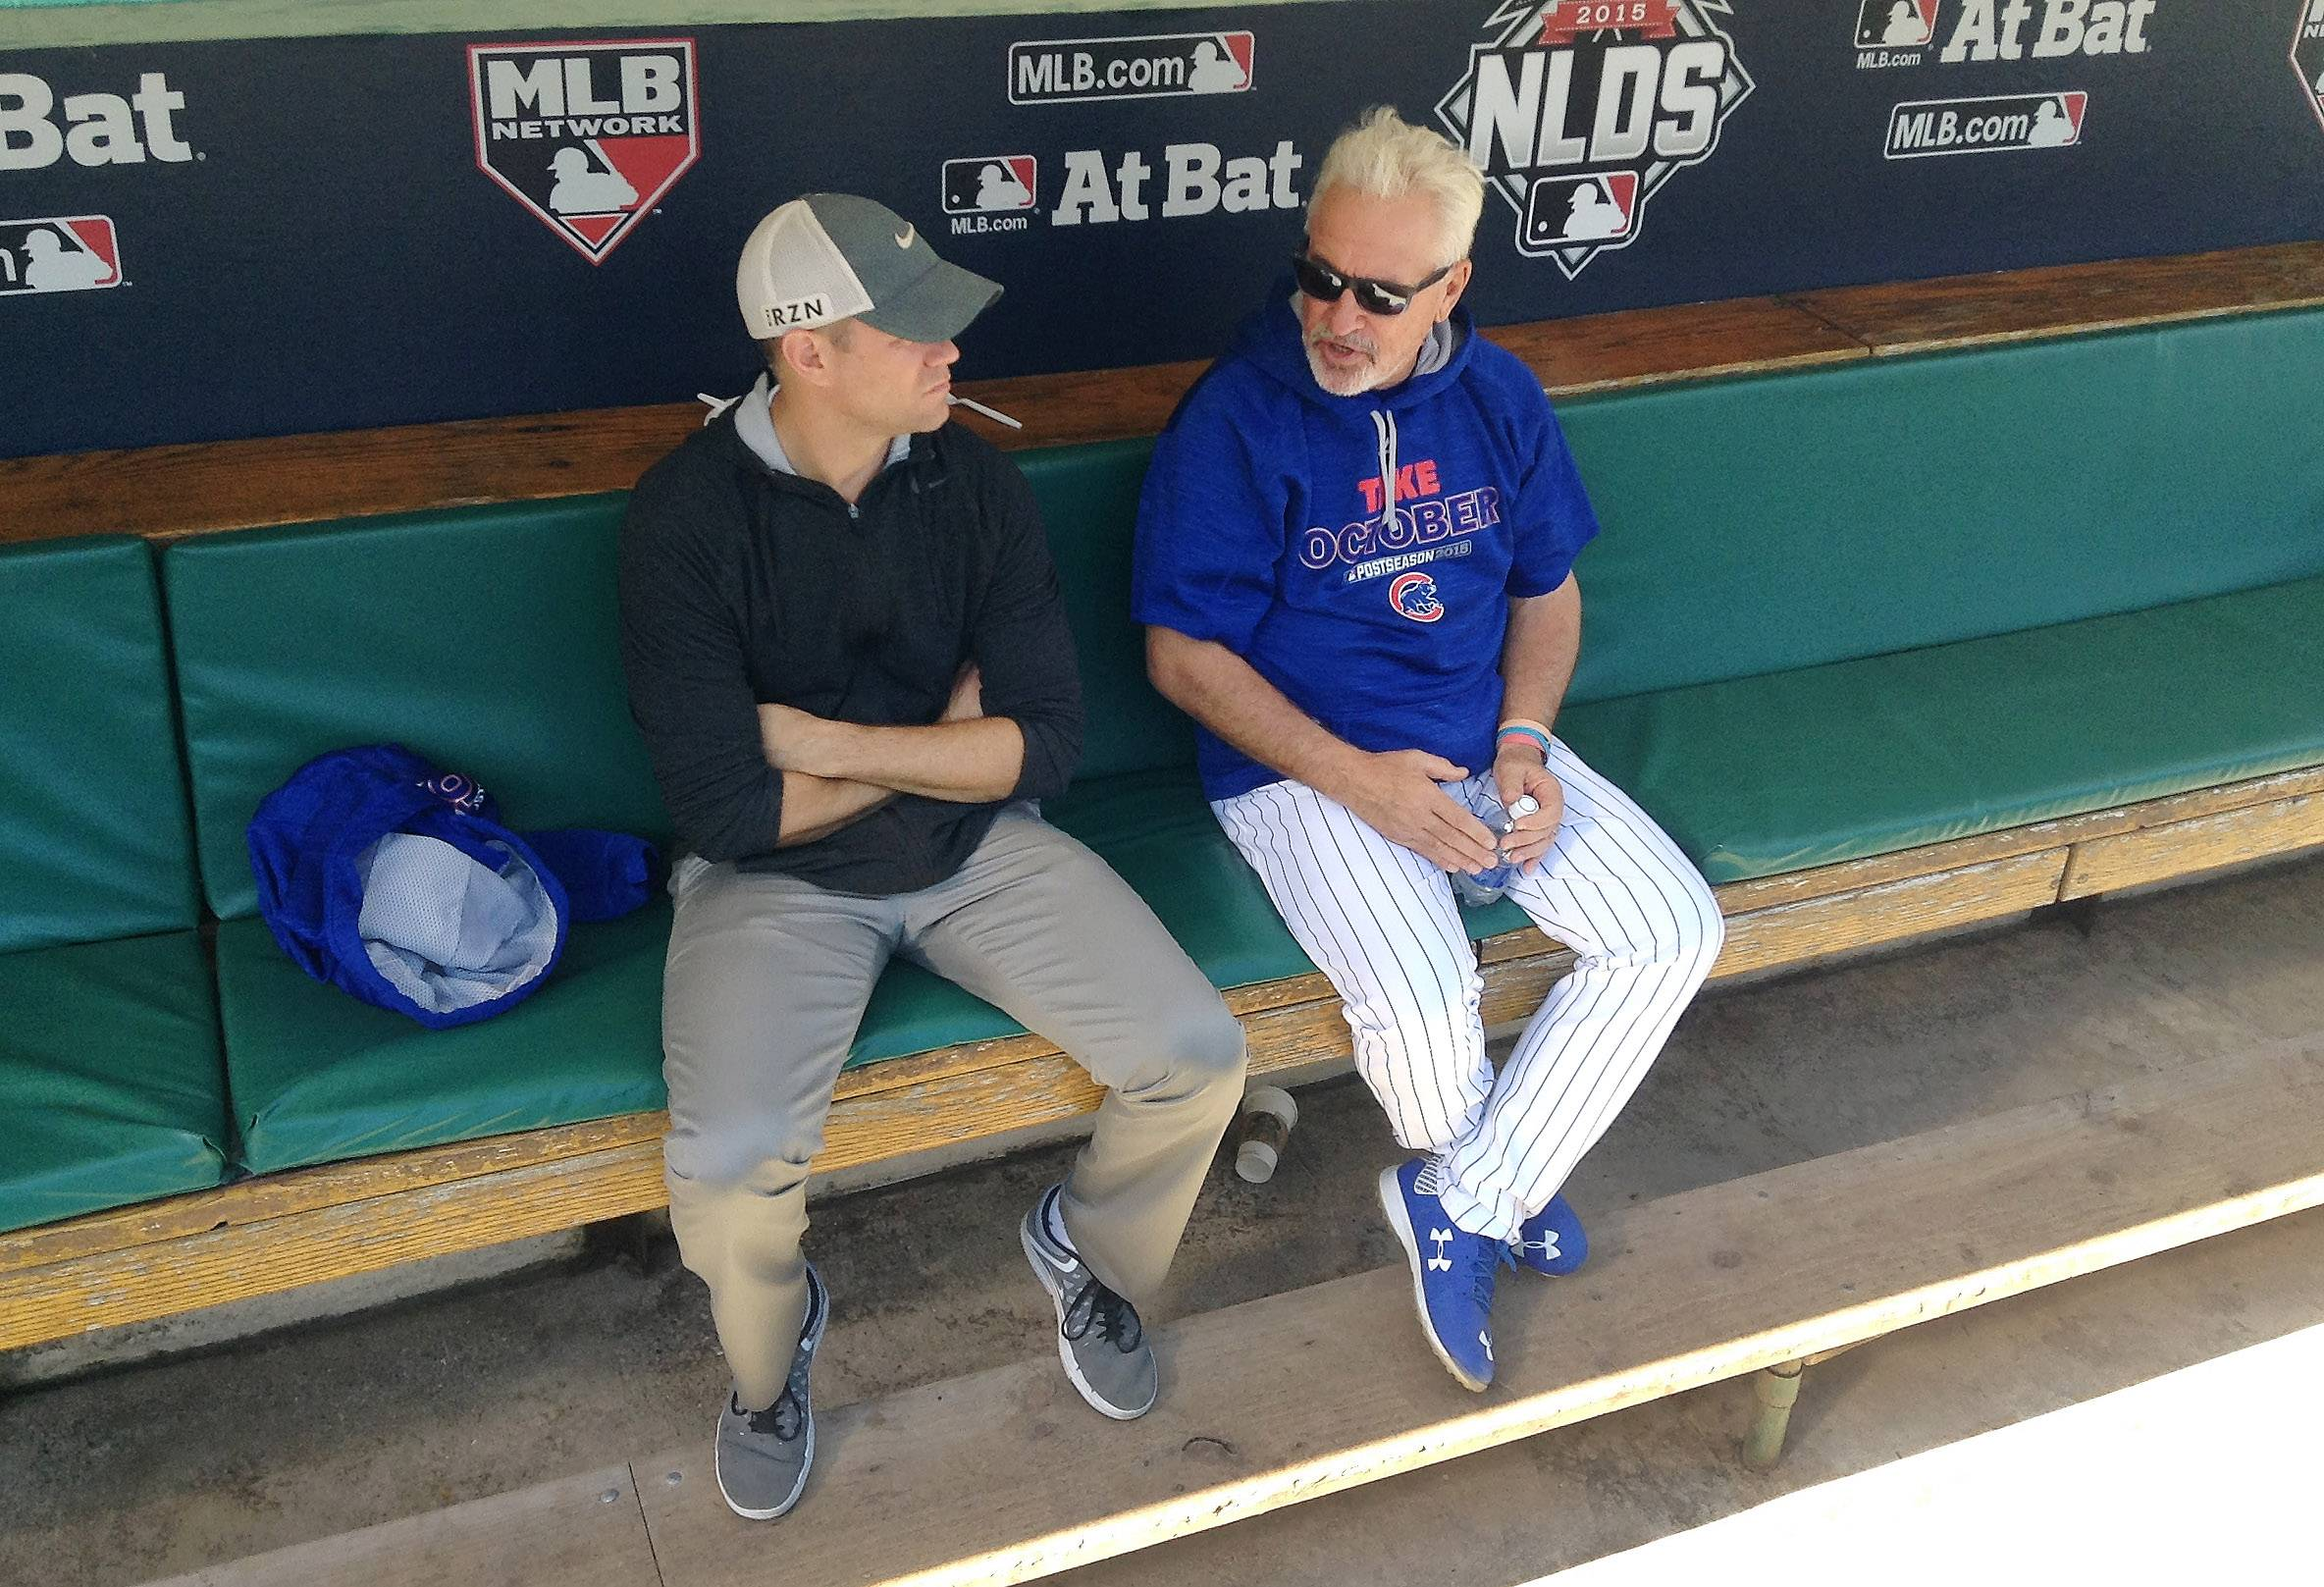 Cubs president Theo Epstein, left, and manager Joe Maddon share a moment in the Cubs dugout during a workout before Game 3 of the 2015 NLDS at Wrigley Field. It would be difficult for Epstein to blame Maddon for the Cubs' disappointing postseason showing this year, although he did fire pitching coach Chris Bosio and hitting coach John Mallee a year ago after three straight NLCS appearances and a World Series title.